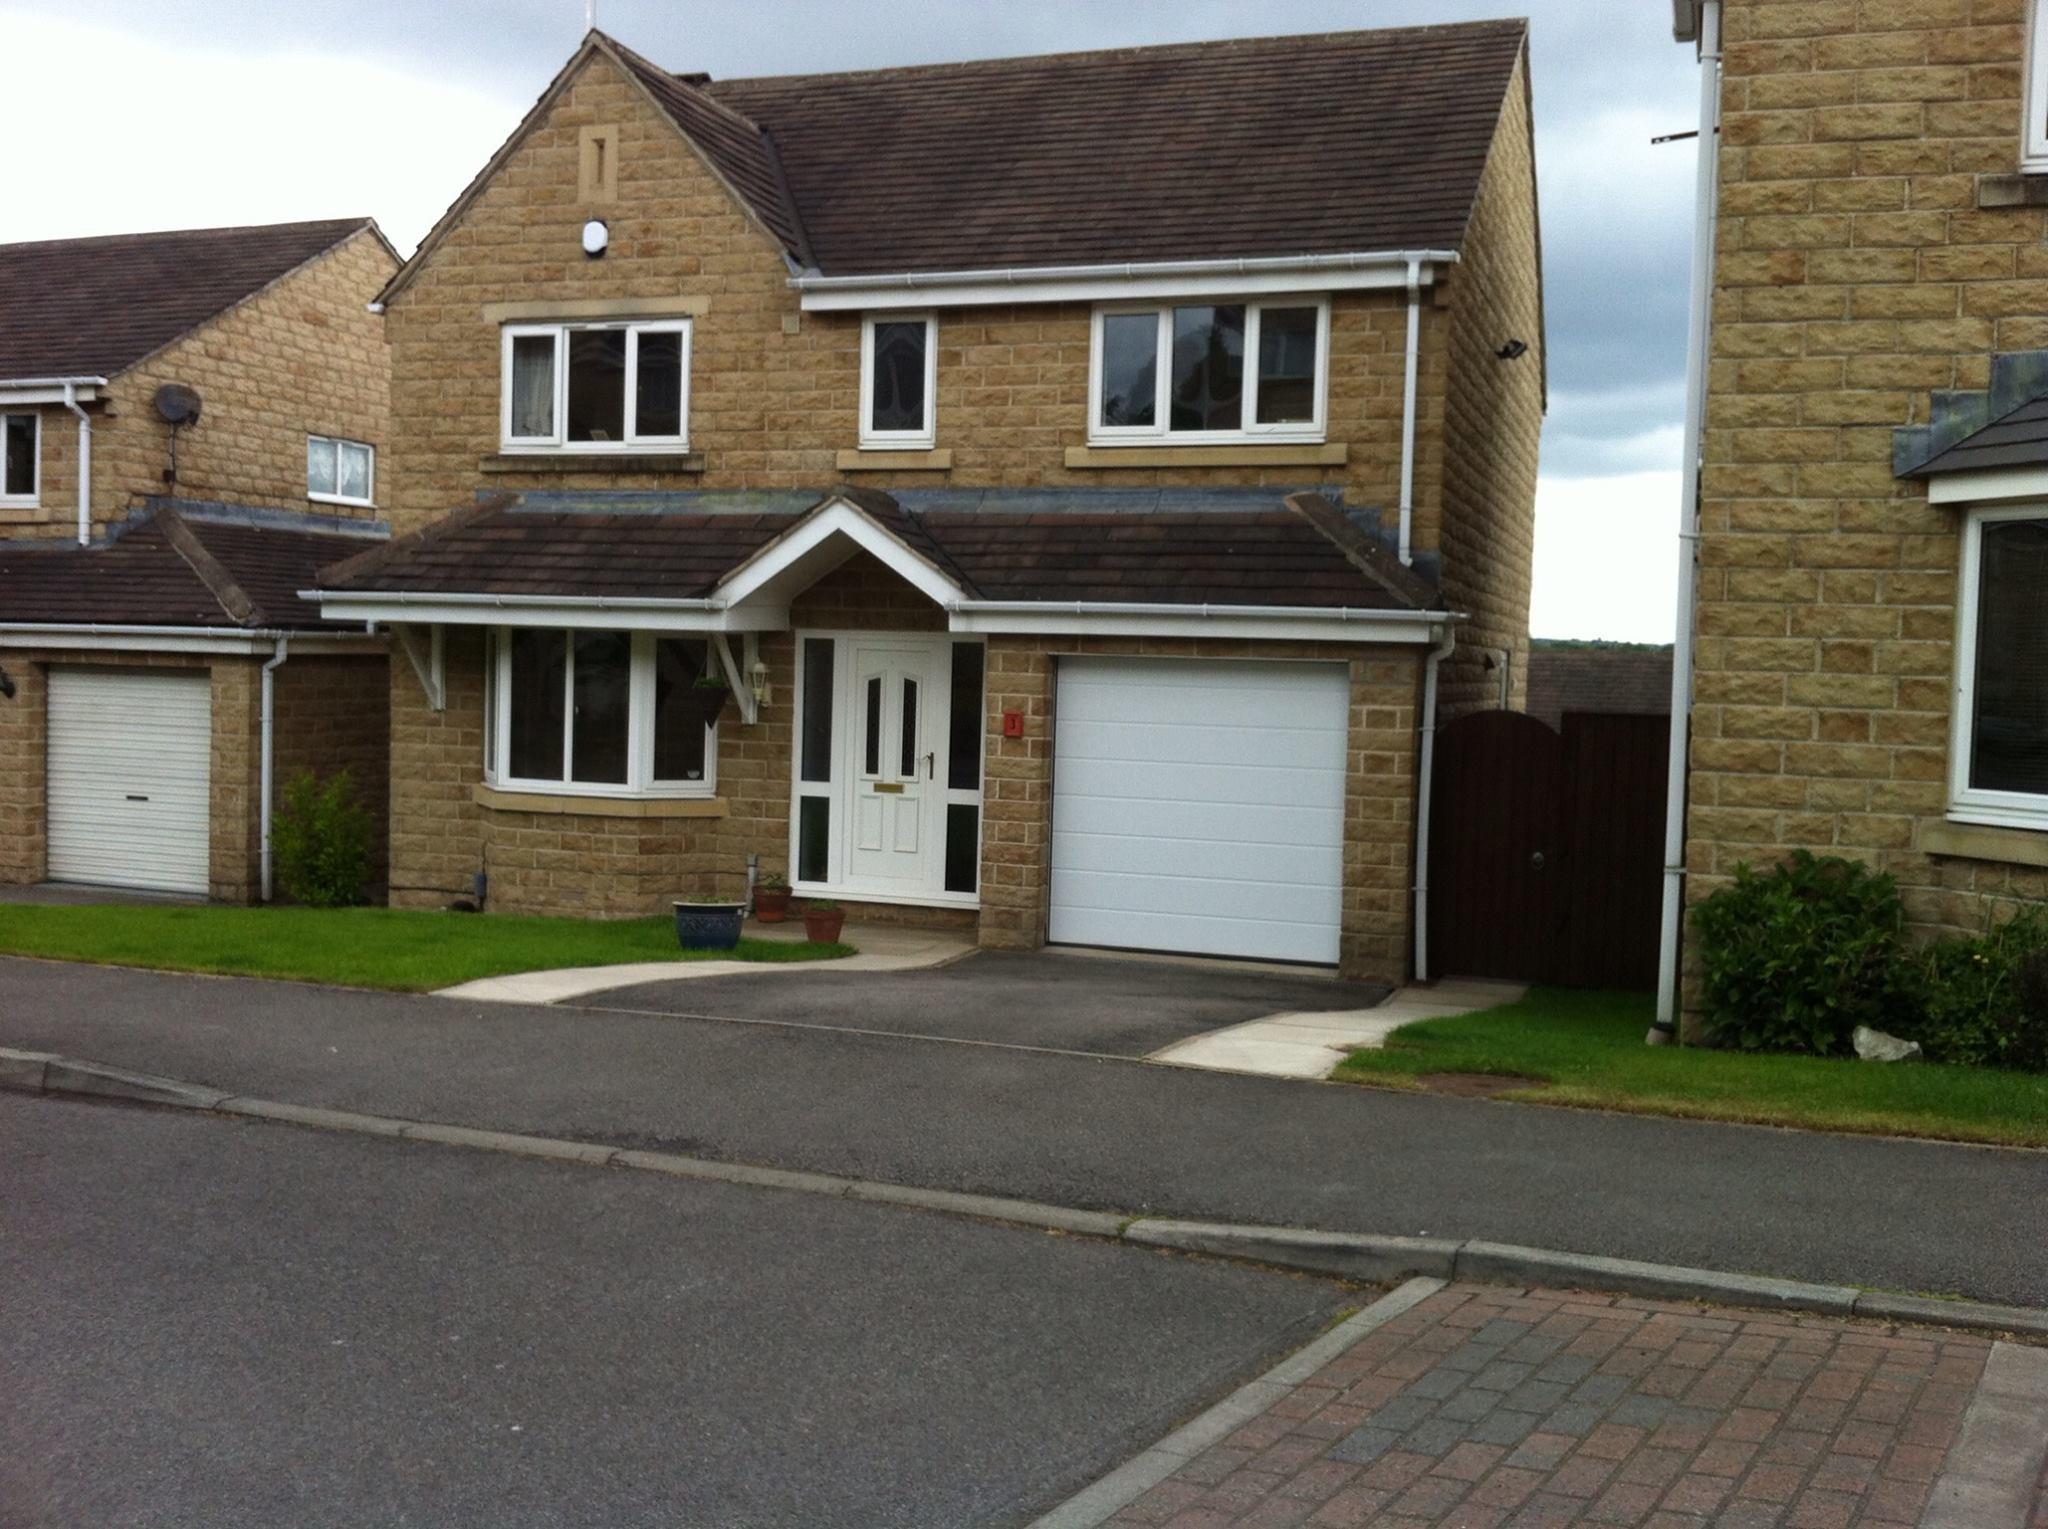 1529 #45591E 1st Choice Garage Doors : Mirfield Yorkshire pic First Garage Doors 36212048